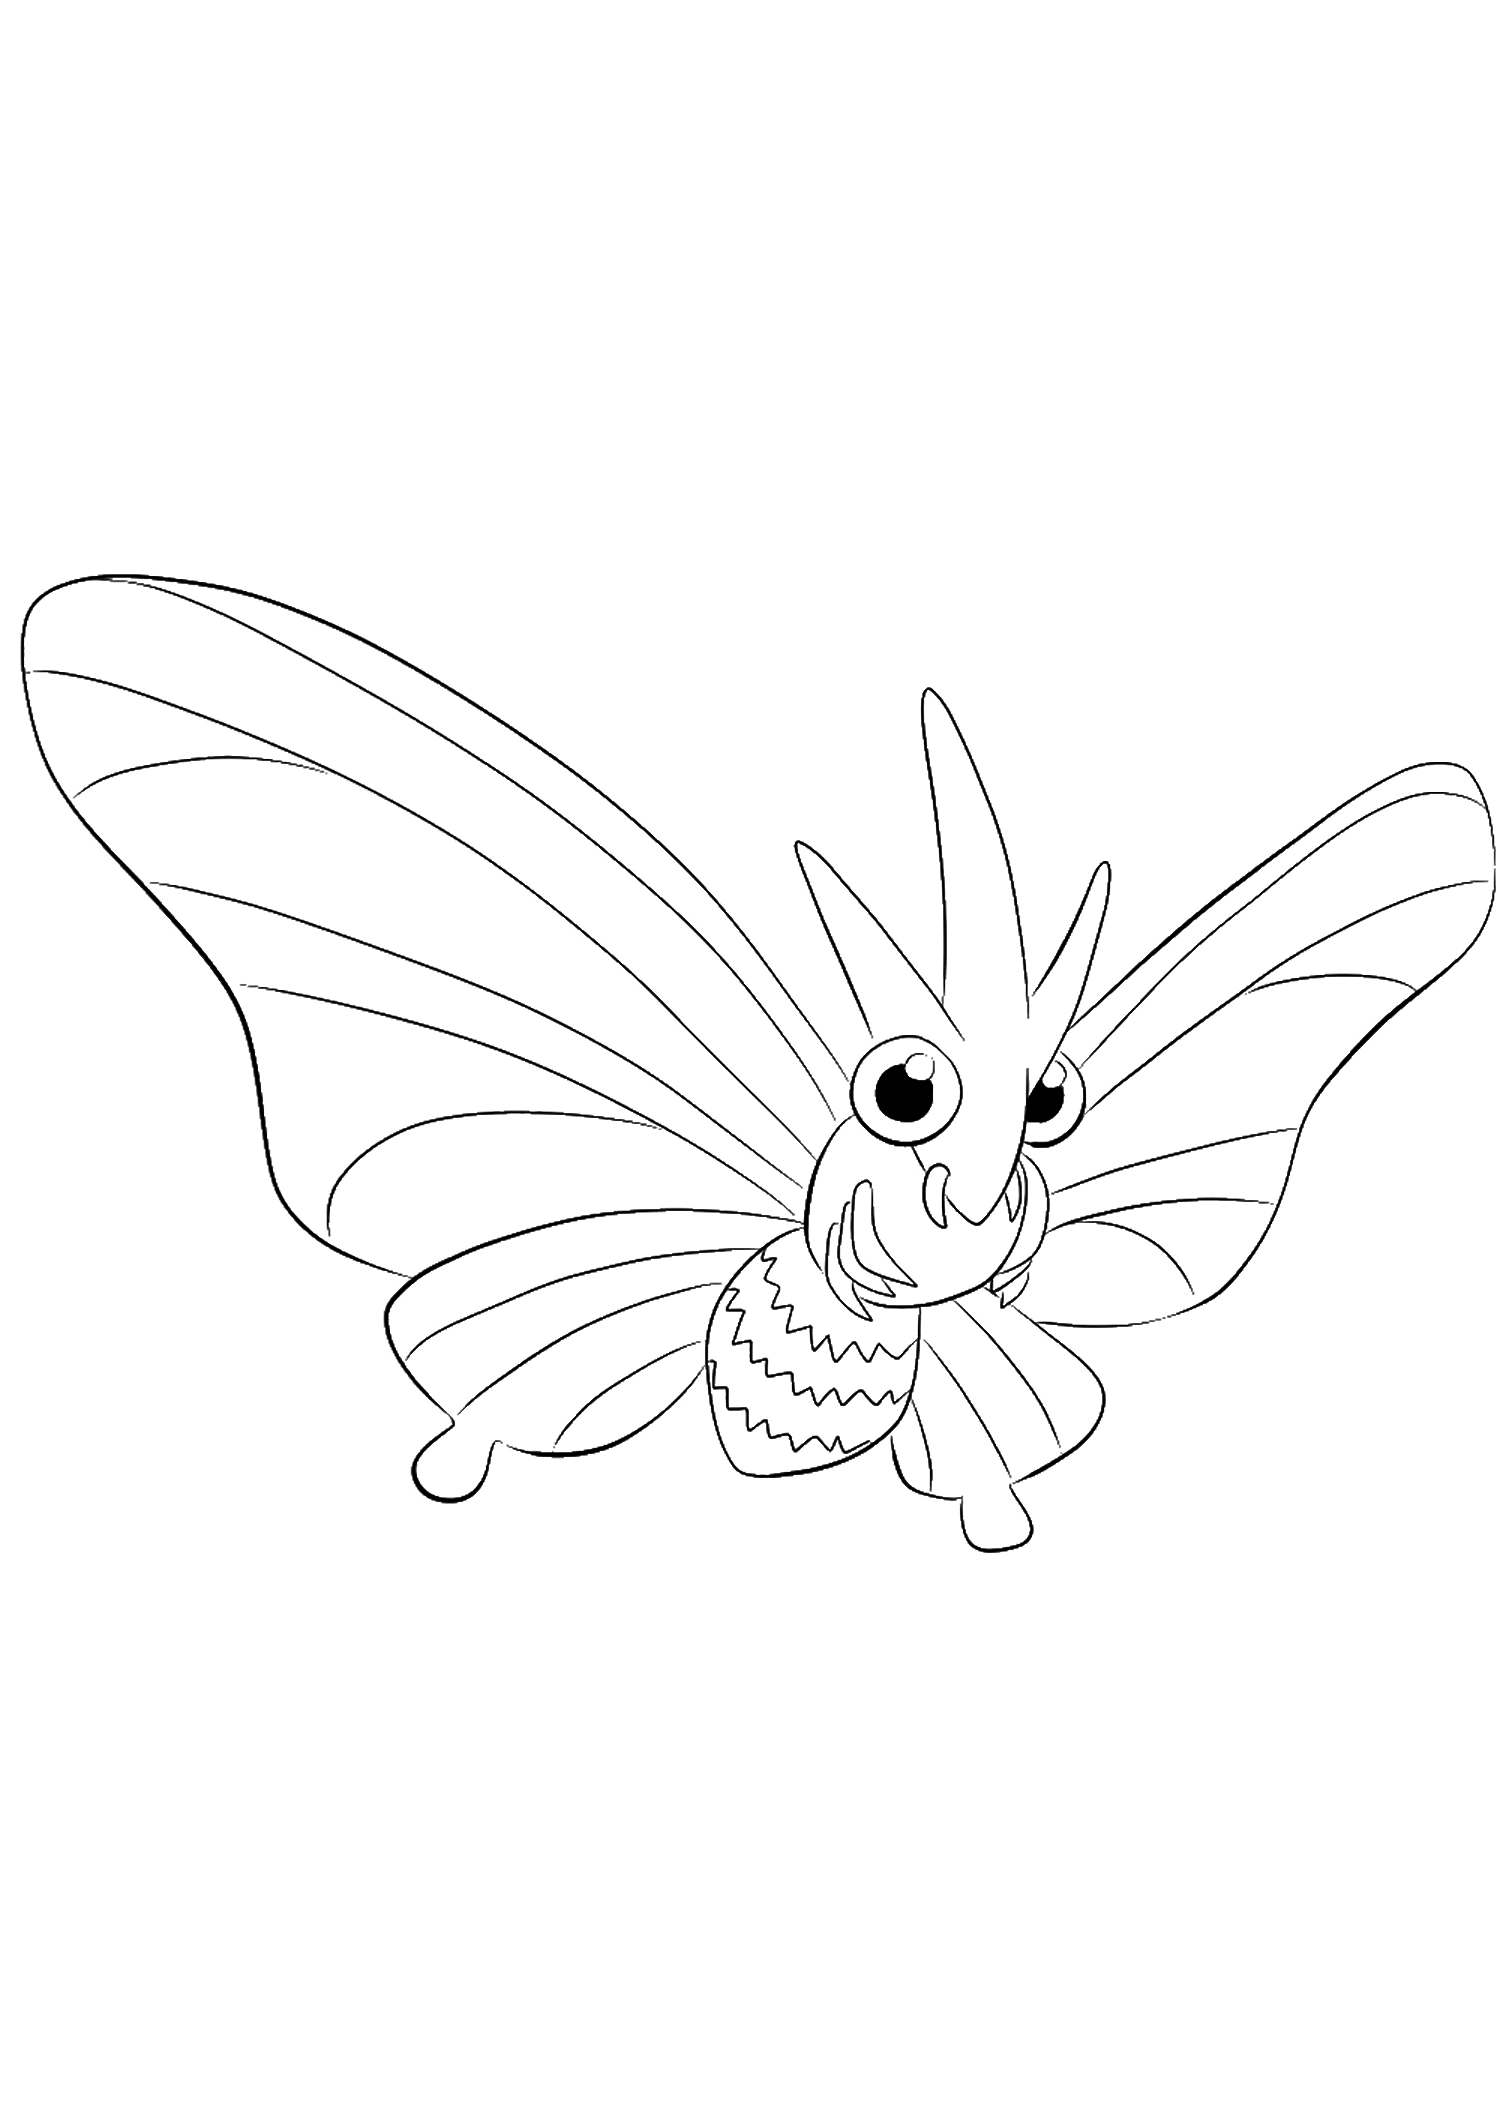 Venomoth (No.49)Venomoth Coloring page, Generation I Pokemon of type Bug and PoisonOriginal image credit: Pokemon linearts by Lilly Gerbil'font-size:smaller;color:gray'>Permission: All rights reserved © Pokemon company and Ken Sugimori.